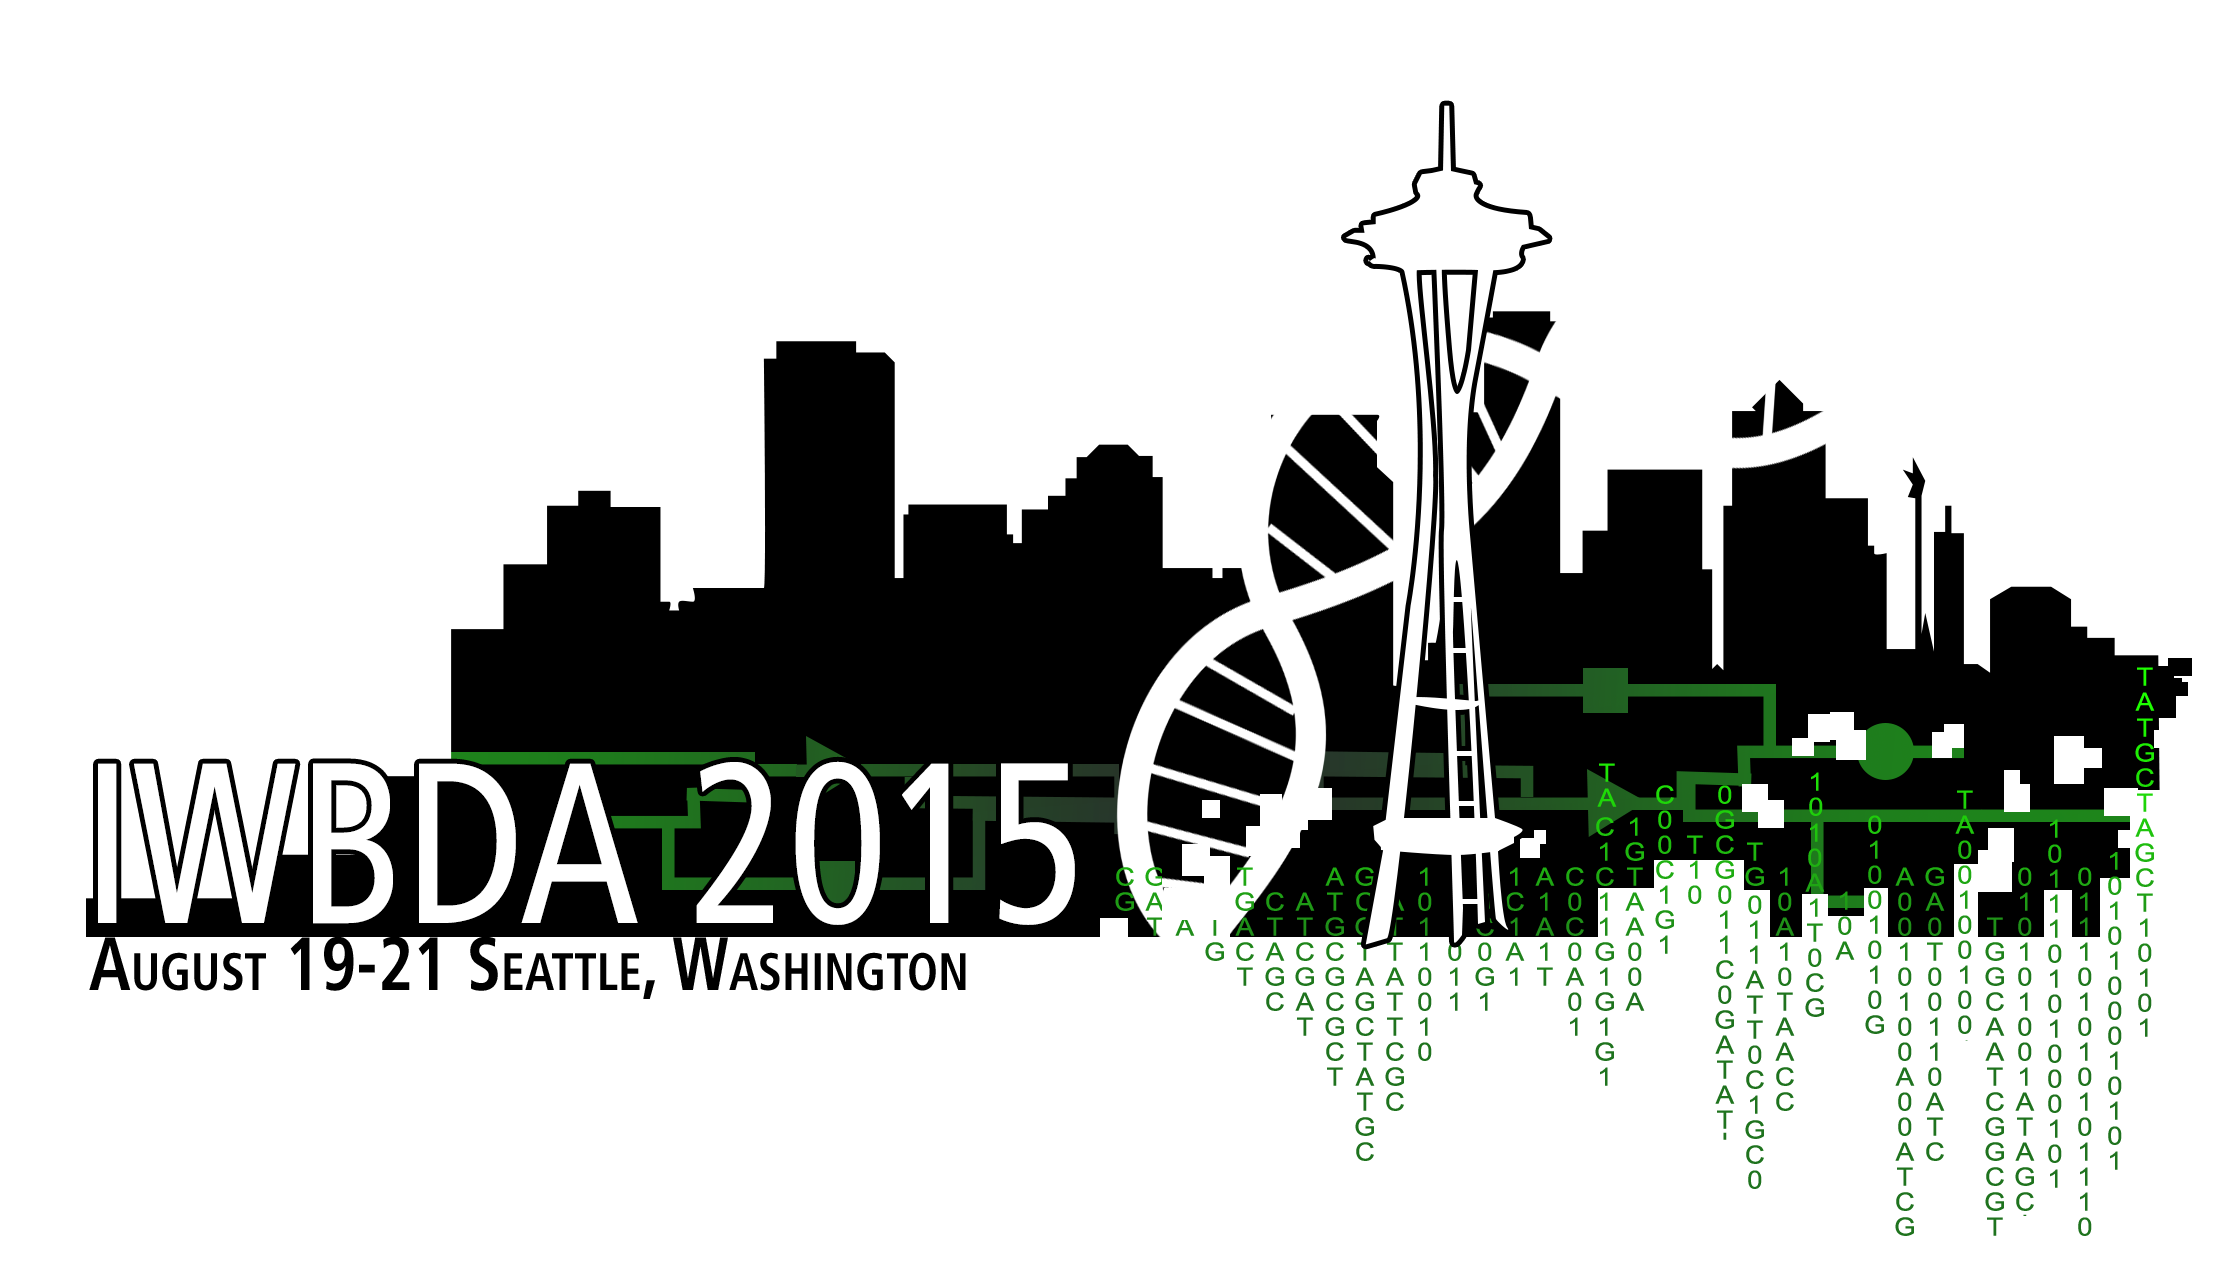 IWBDA 2015: 7th International Workshop on Bio-Design Automation